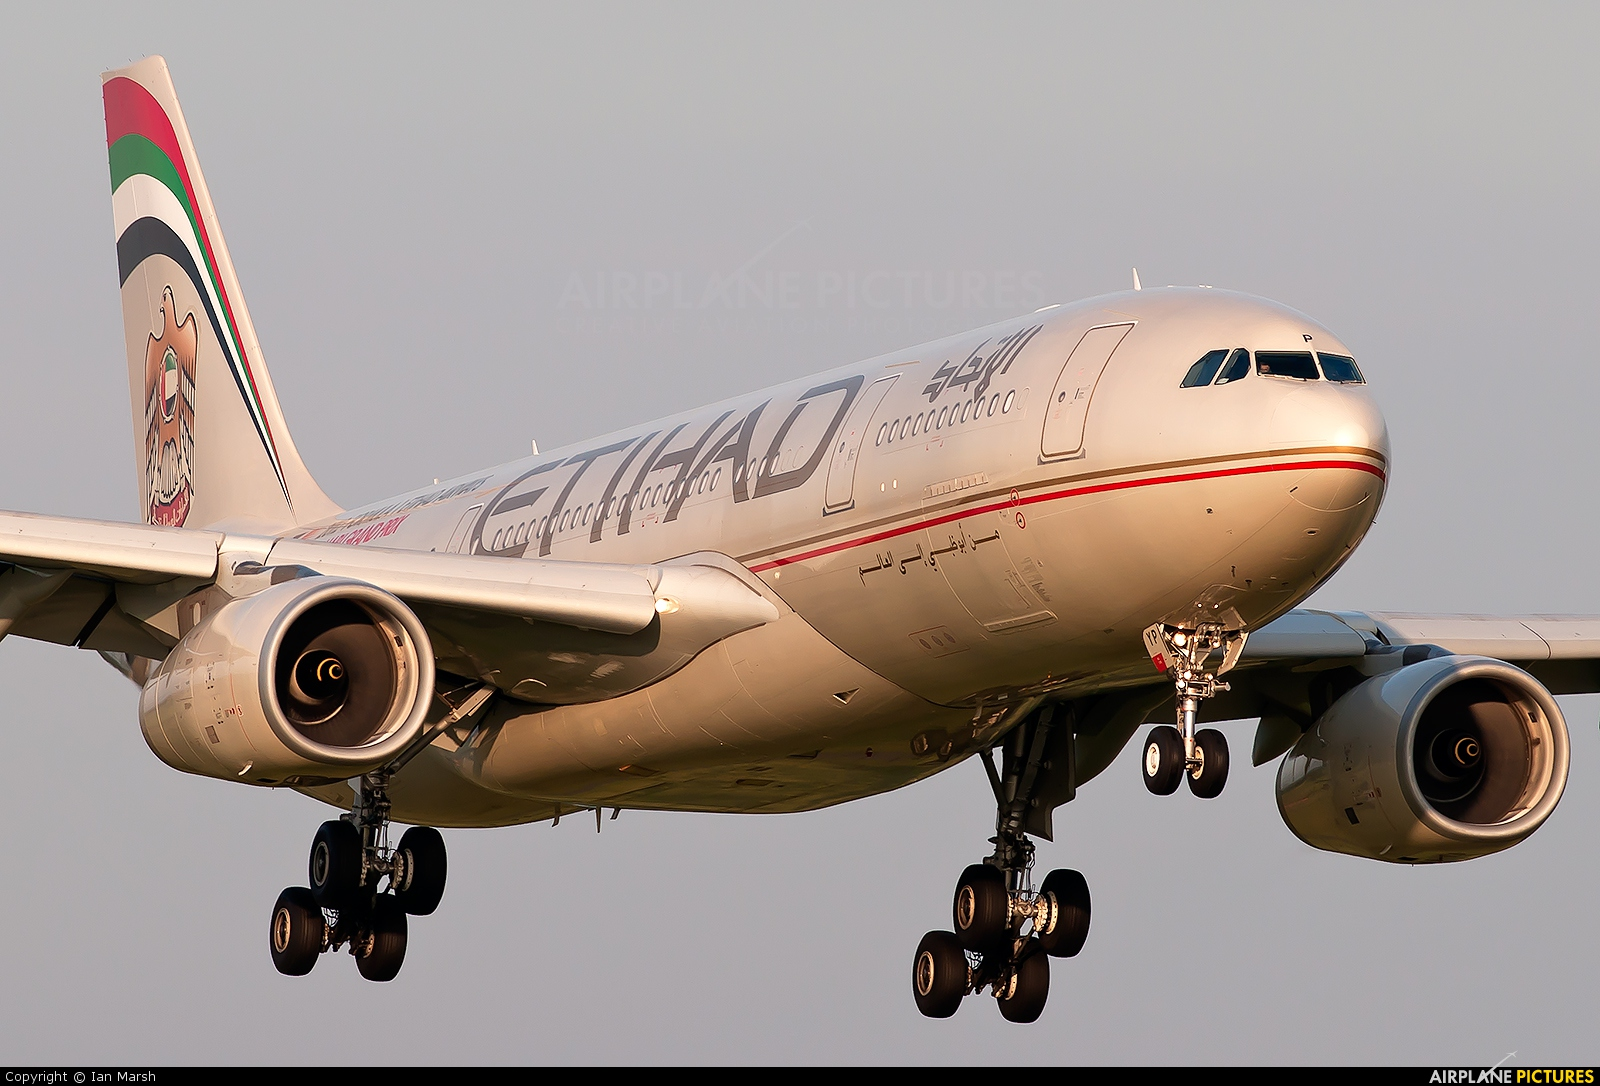 Etihad Airways A6-EYP aircraft at Manchester